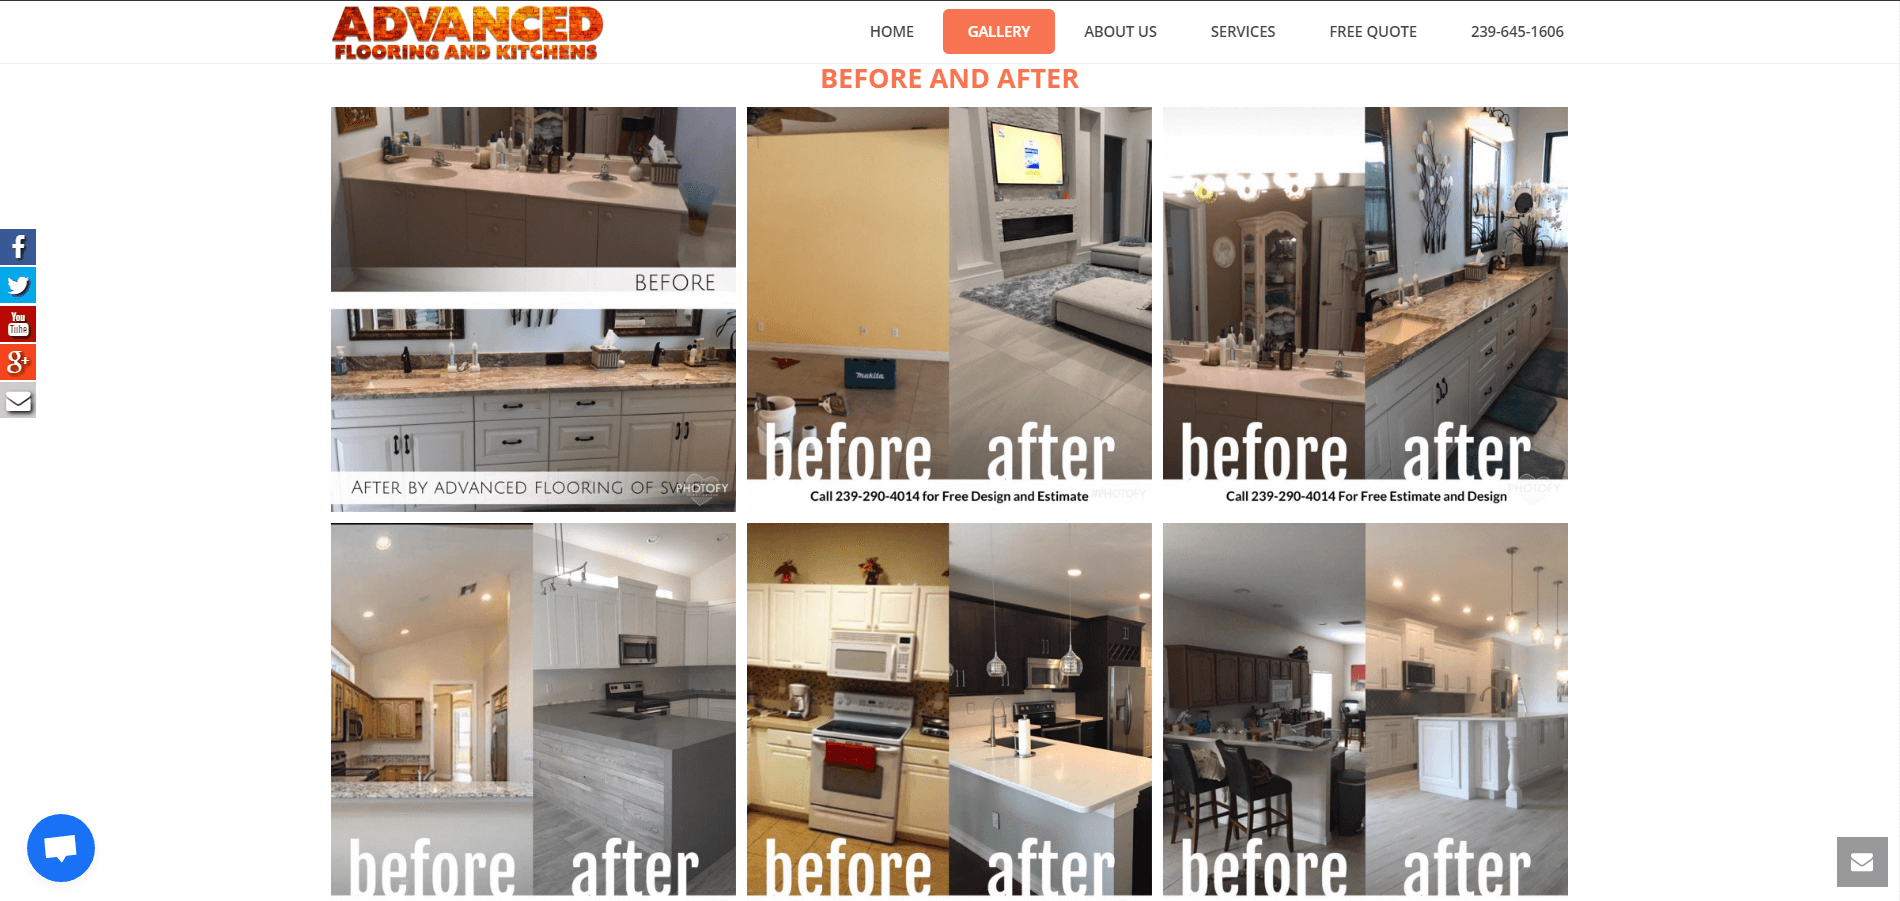 advanced flooring and kitchens gallery page